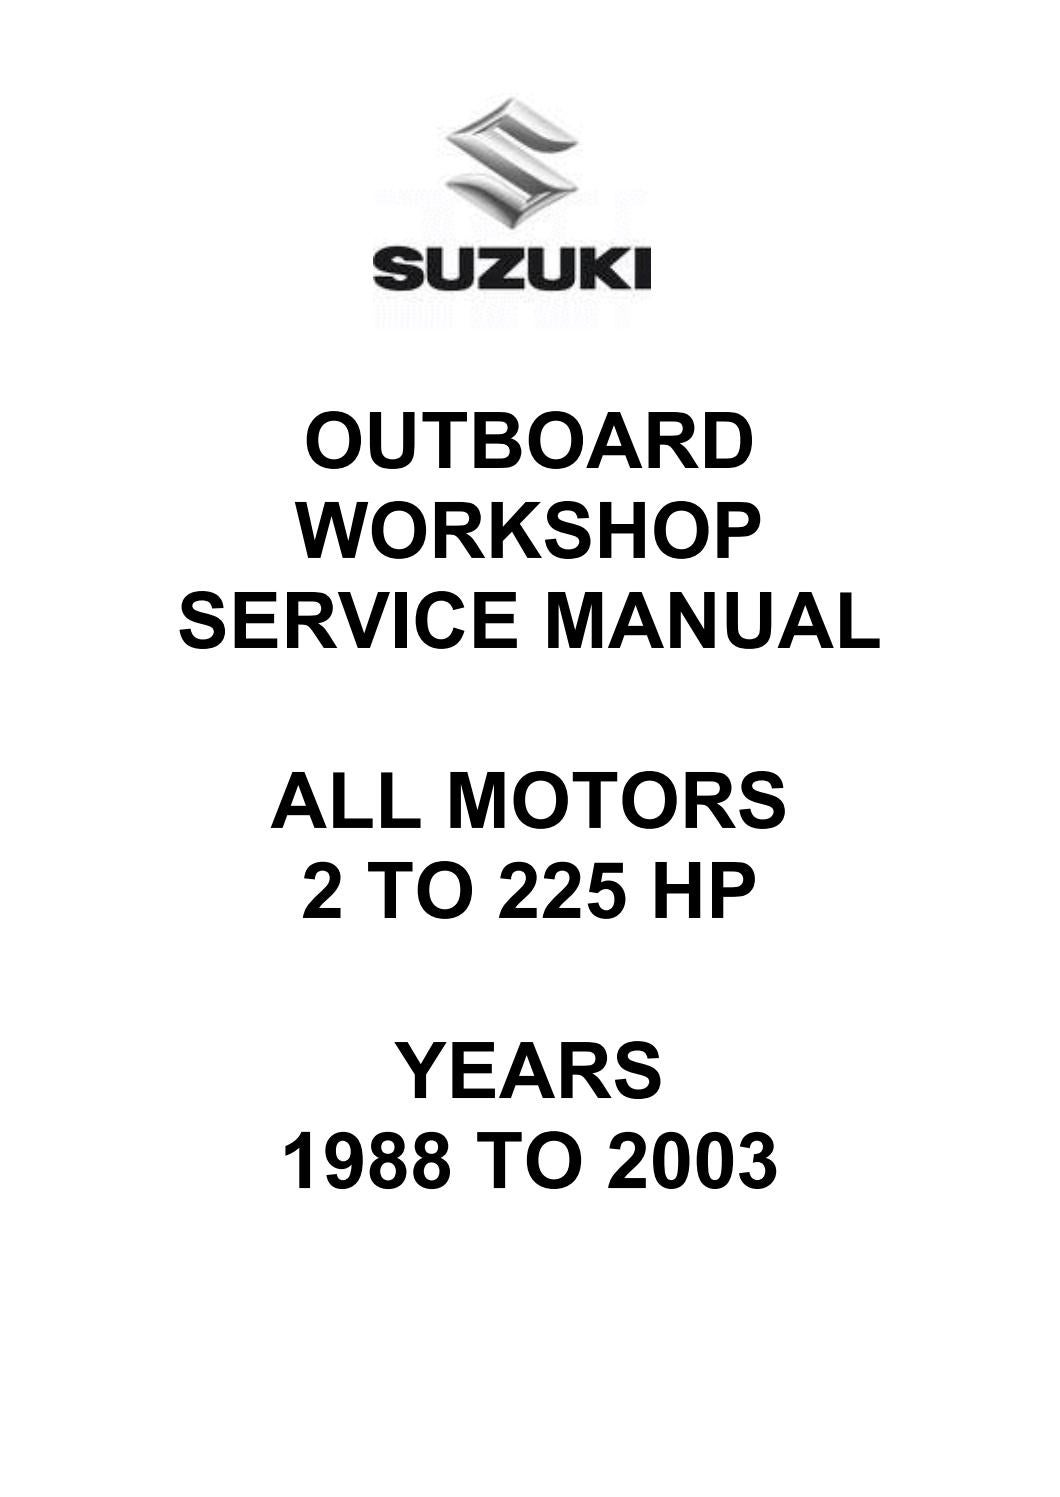 suzuki outboard workshop service manual